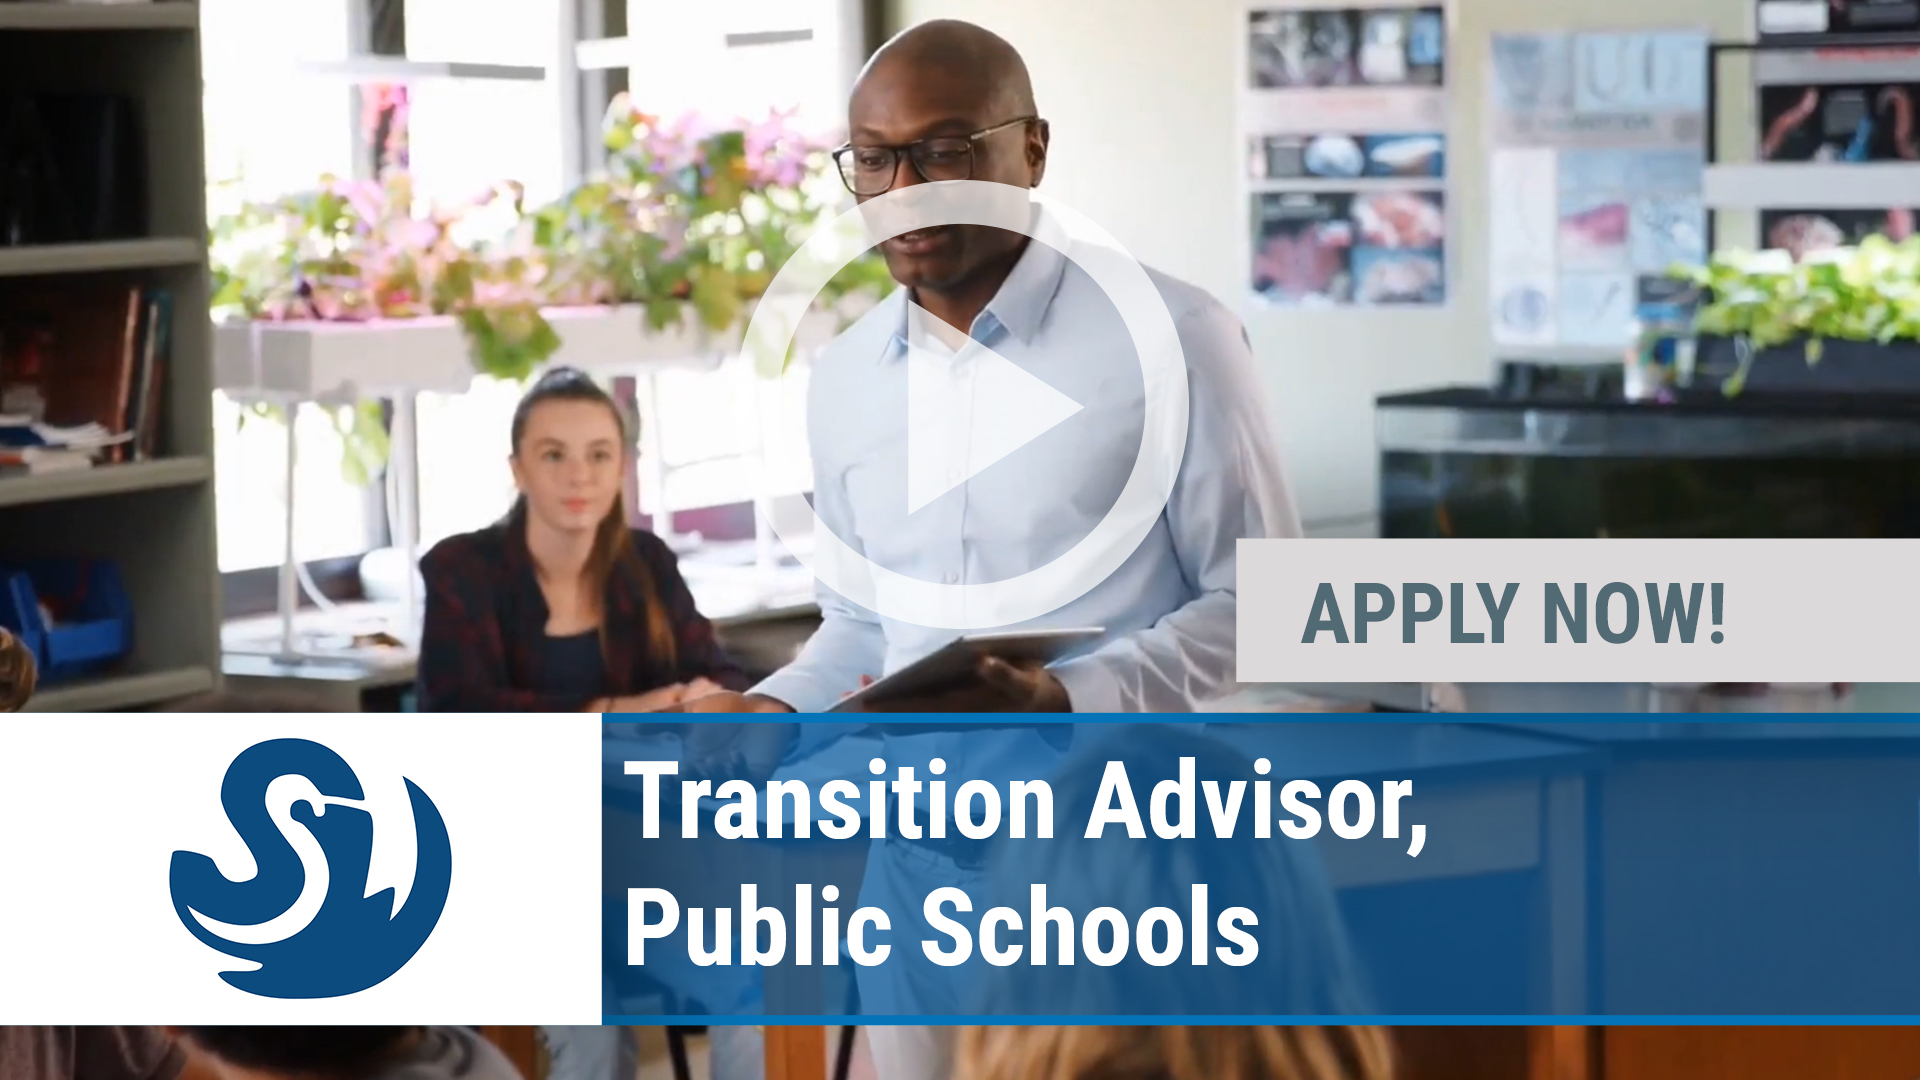 Watch our careers video for available job opening Transition Advisor, Public Schools in Charlotte, NC